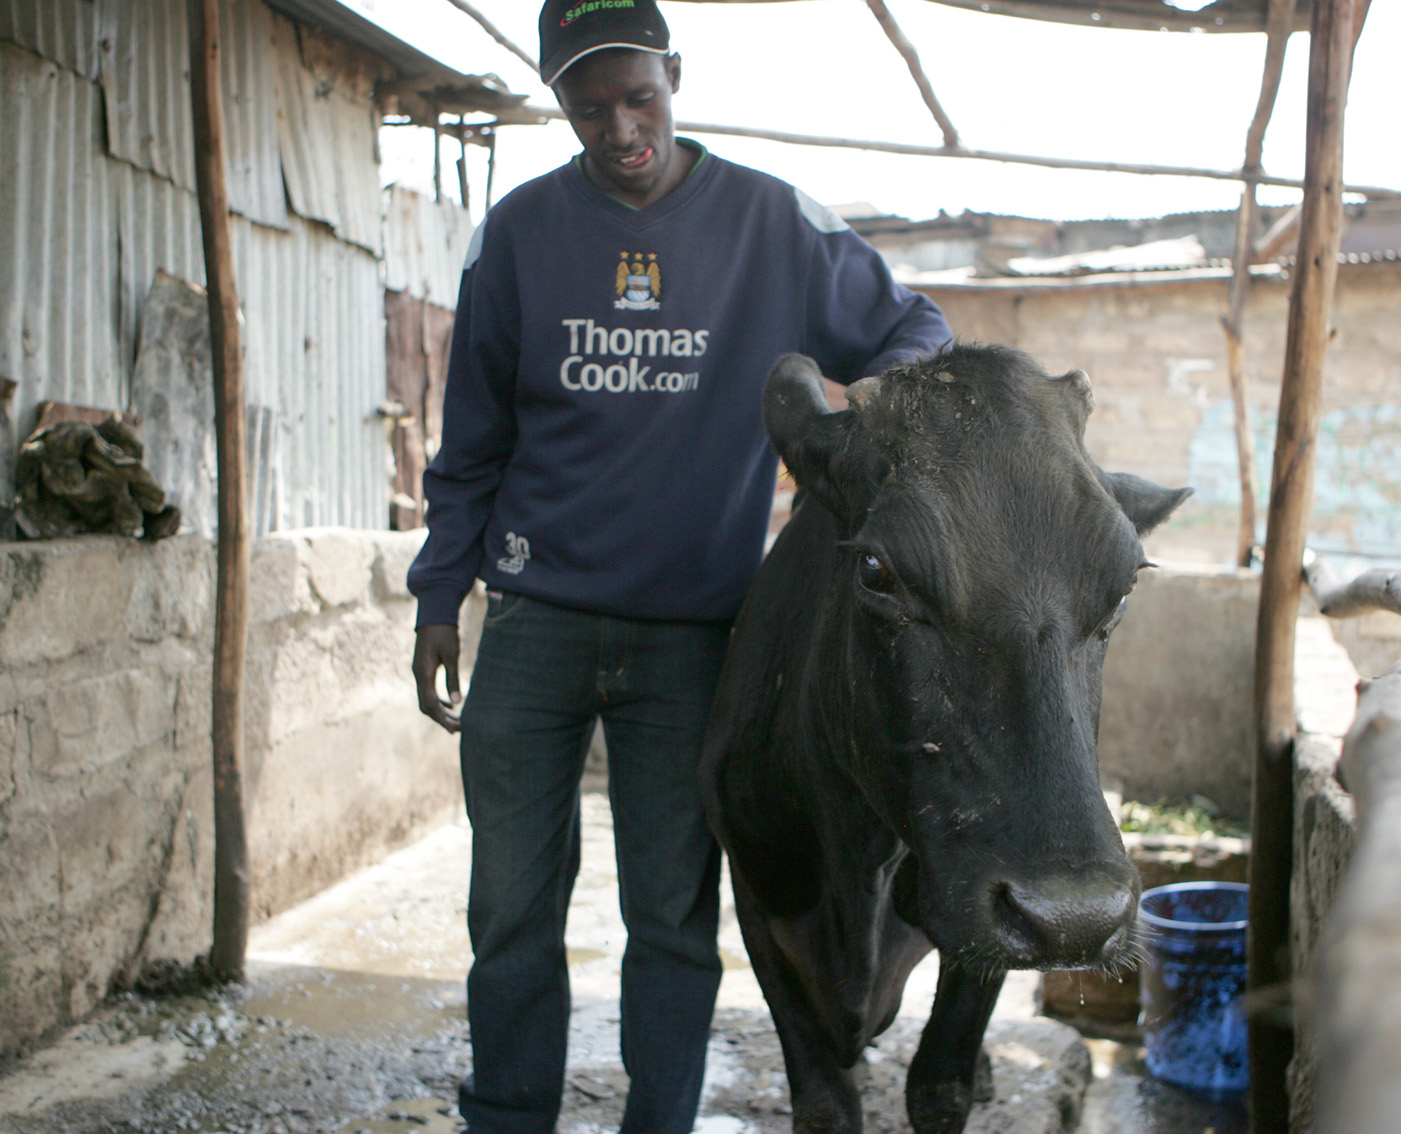 Hillary Wachira, a member of the Kangaroo Youth Self-Help Group in Kosovo area of Mathare, attends to one of the group's cows, whose milk they sell to the local community